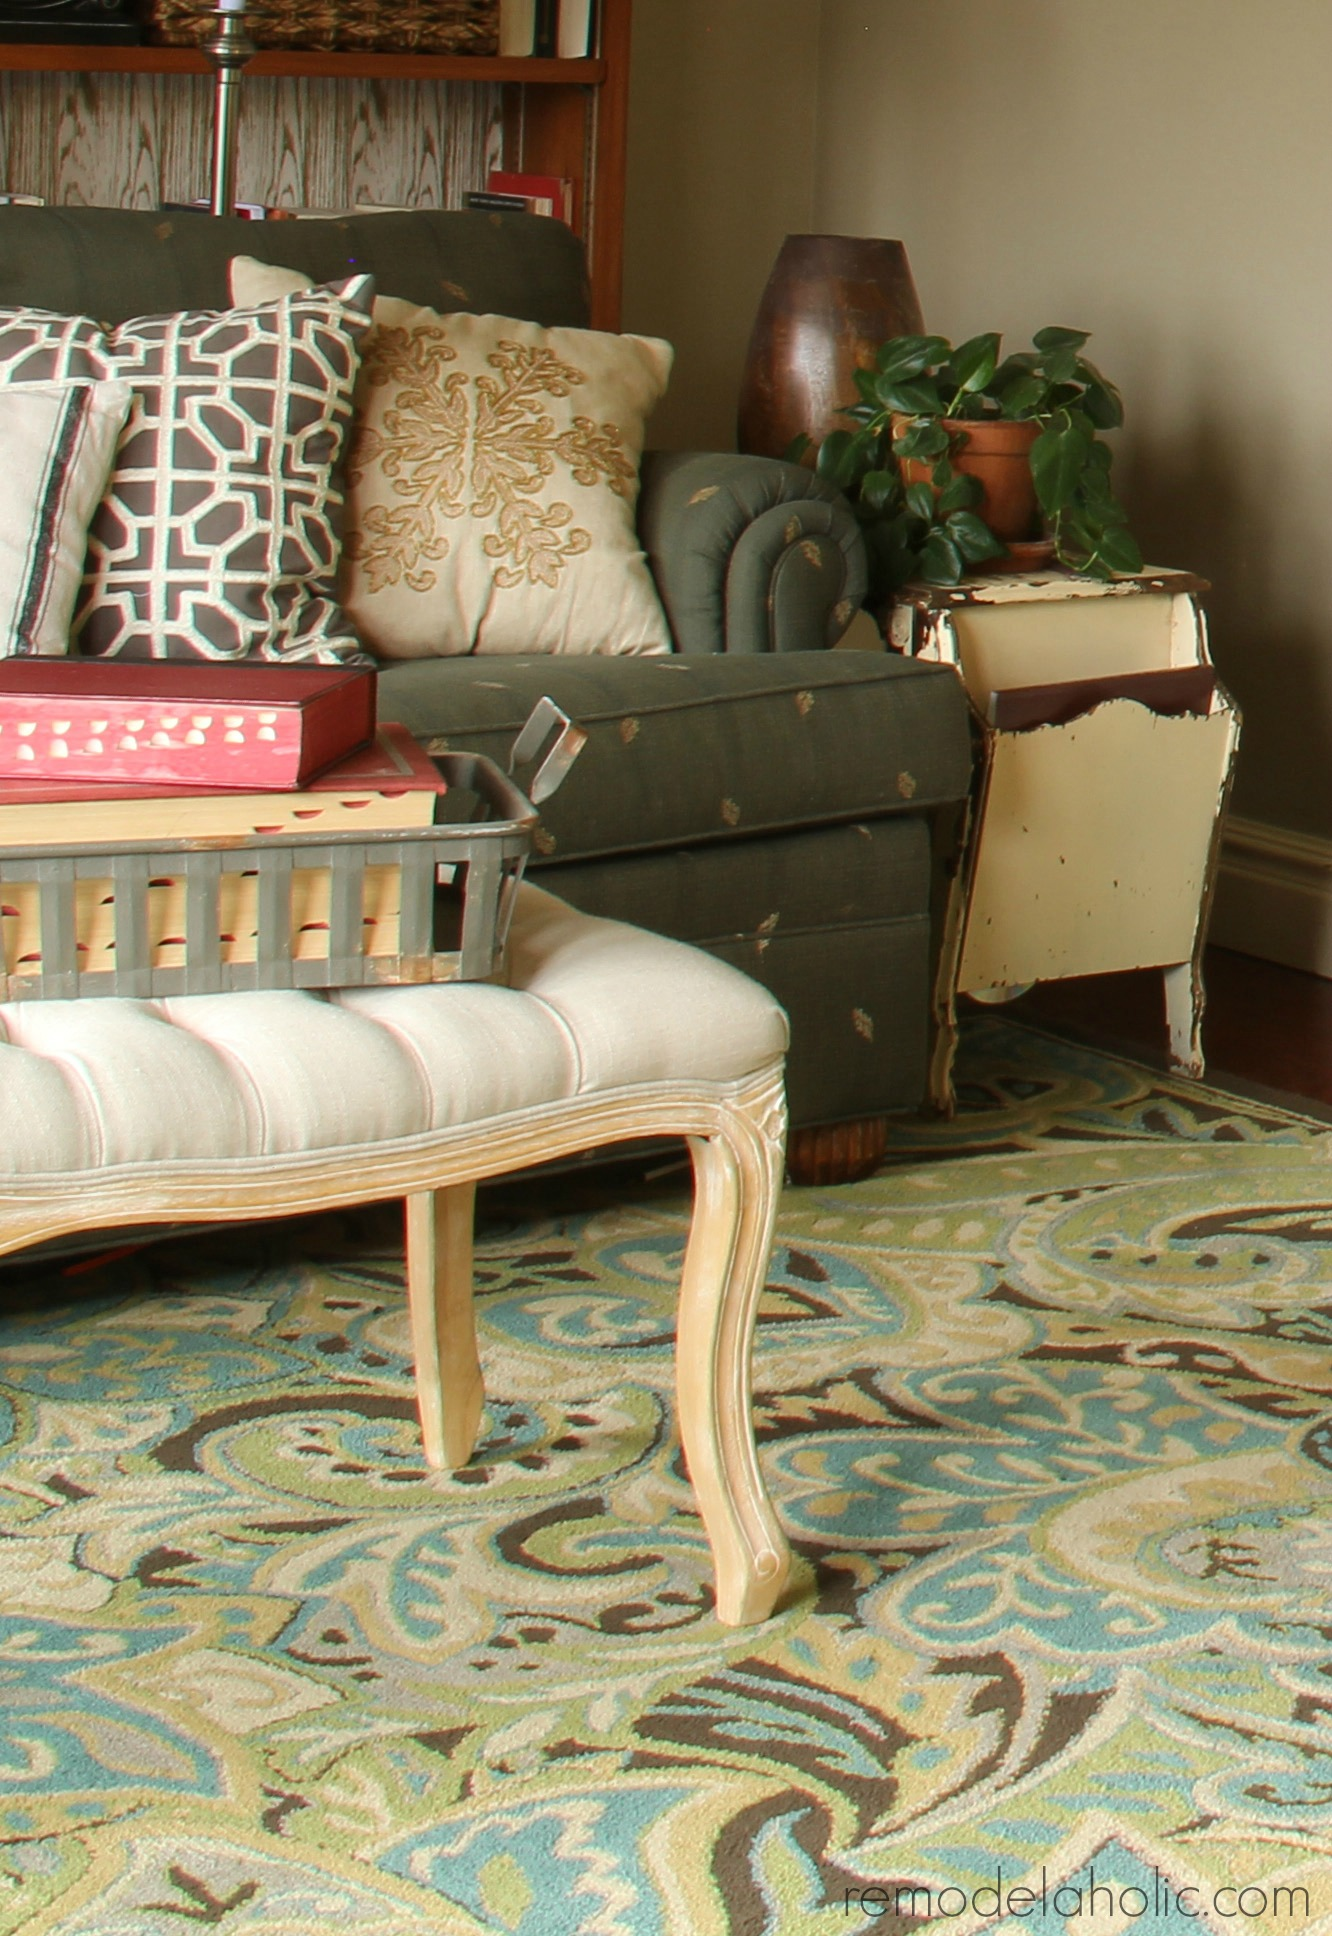 Love The Rug In This Living Room! They Give Sources For Tons Of Great Green Part 42